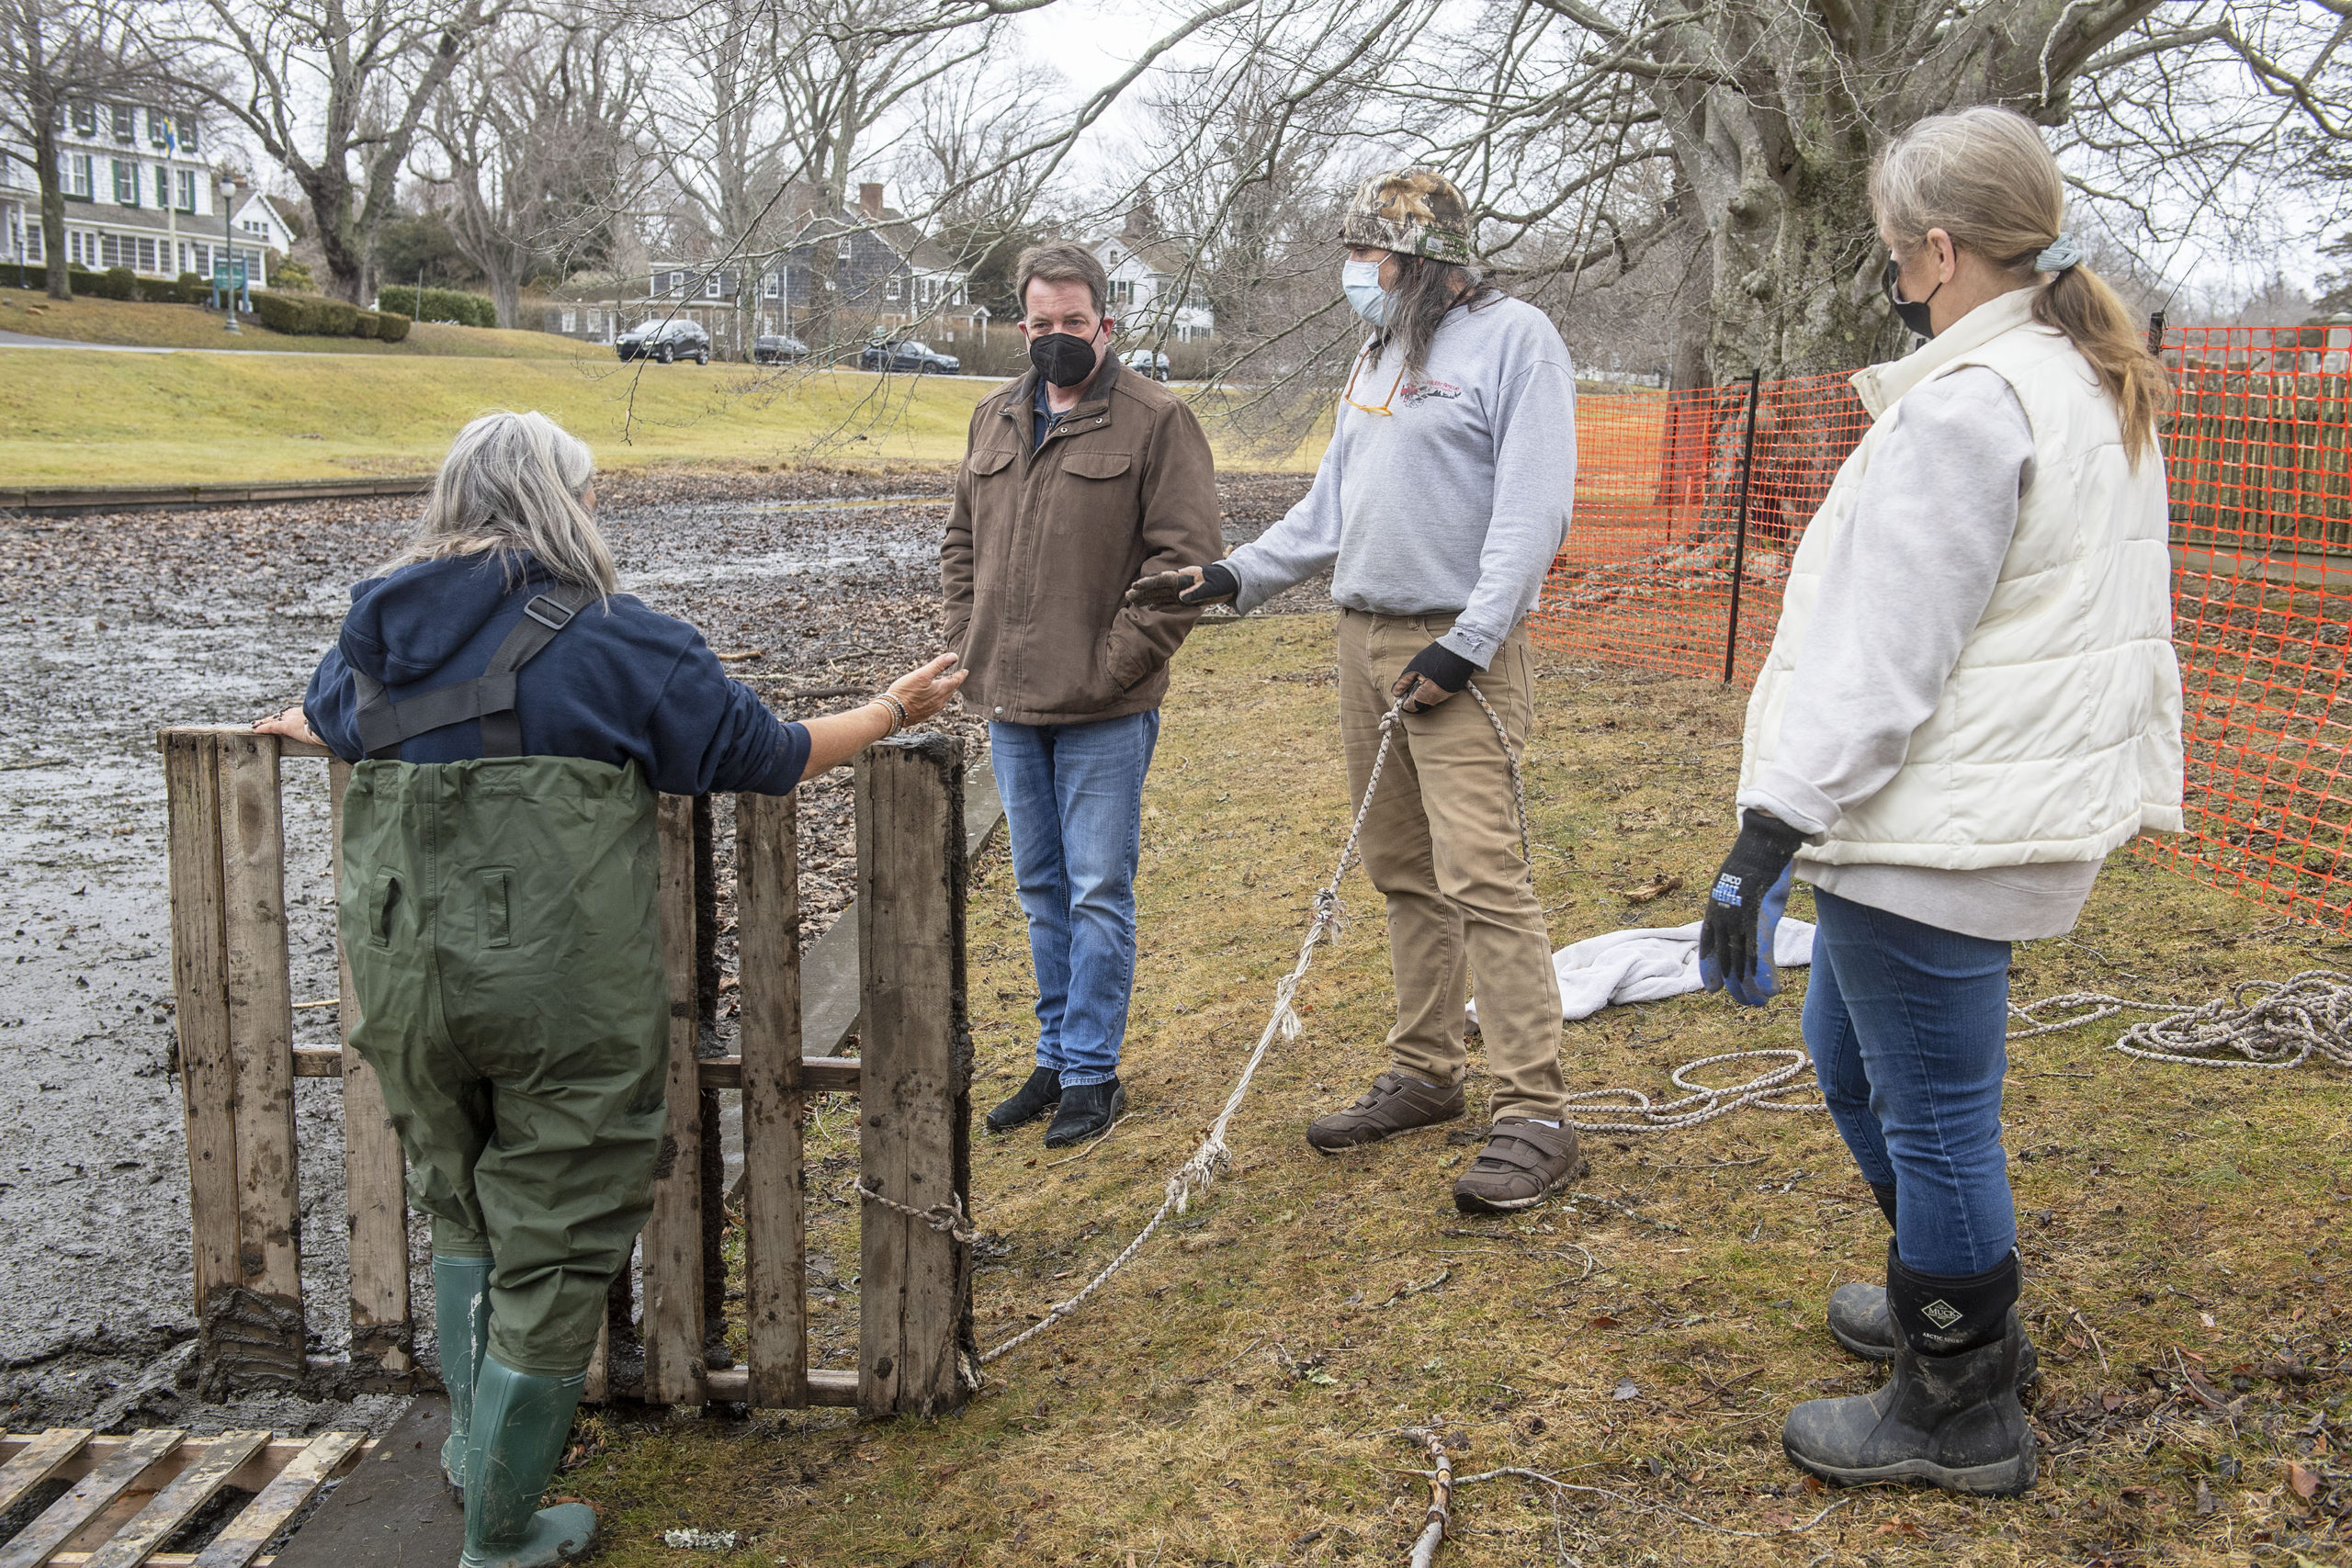 East Hampton Village Mayor Jerry Larsen and wildlife advocate Dell Cullum discussed the need to remove hibernating turtles from the mud of Town Pond before the pond is excavated.